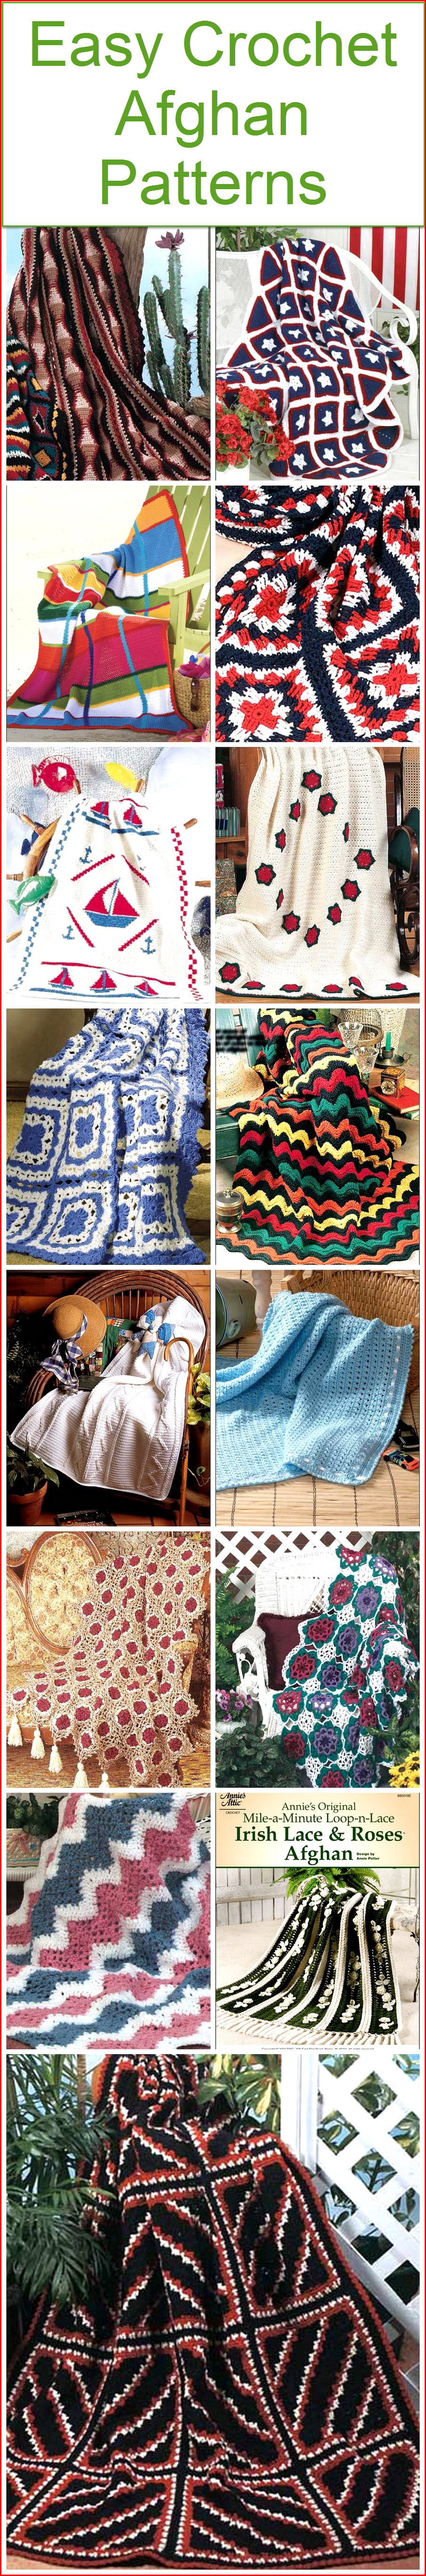 easy-crochet-afghan-patterns